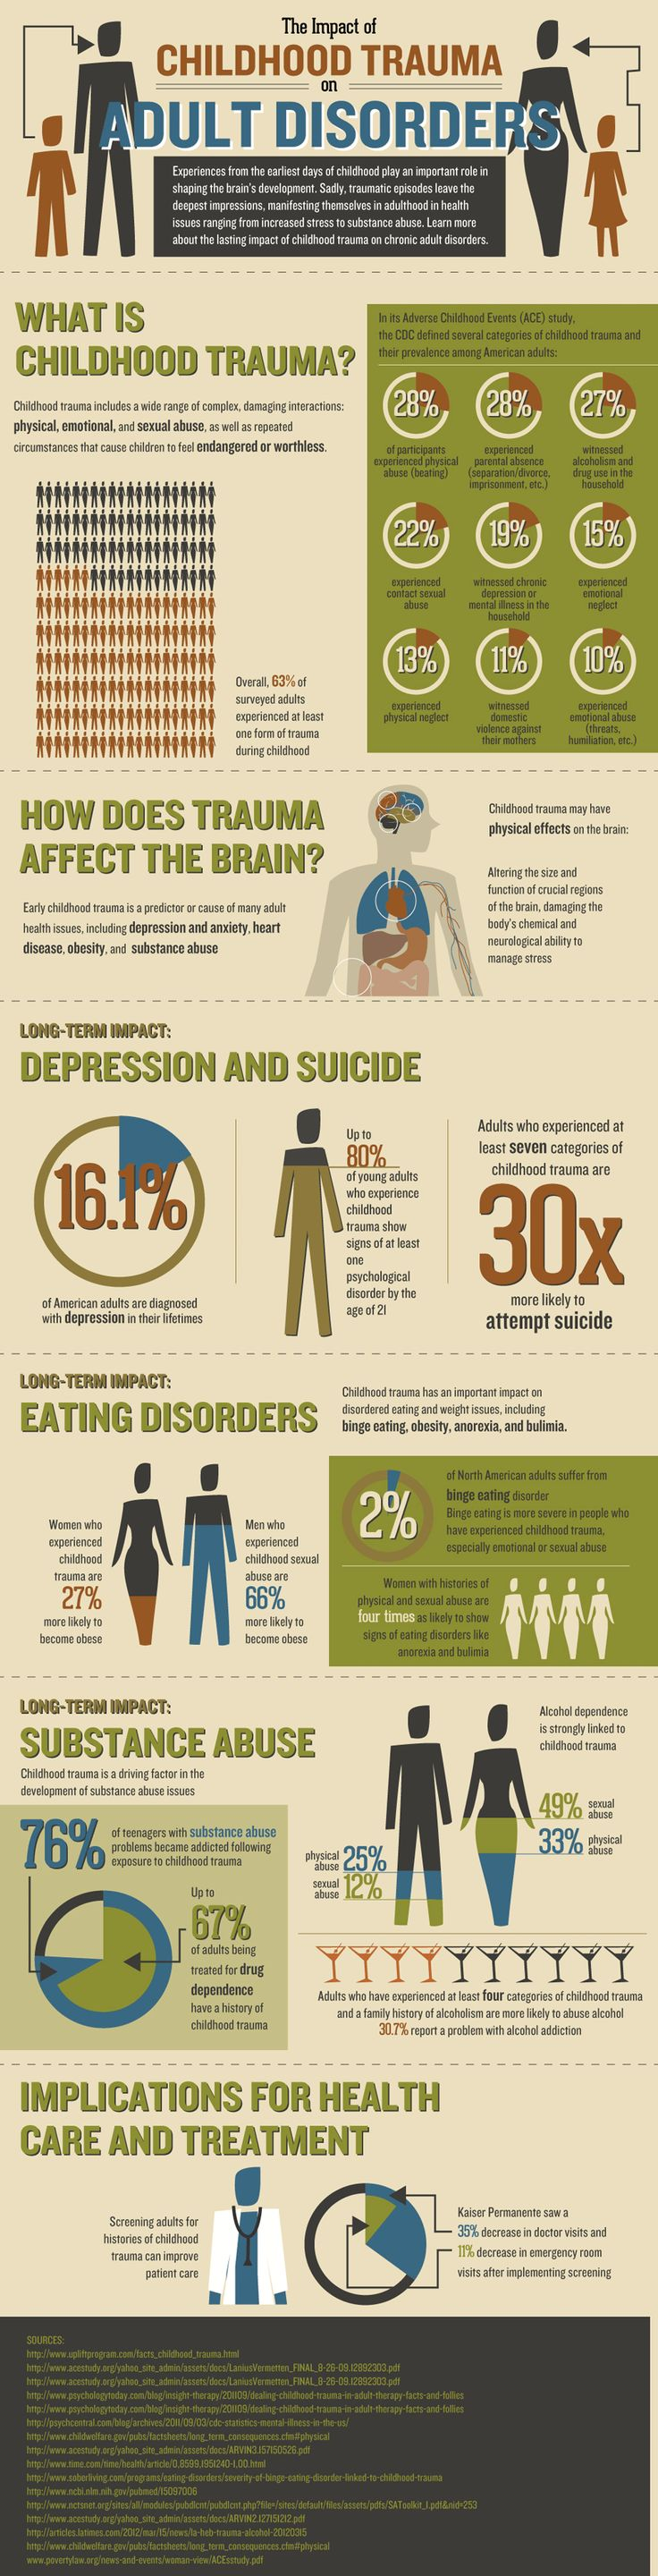 picture How Childhood Abuse Could Impact Your Health